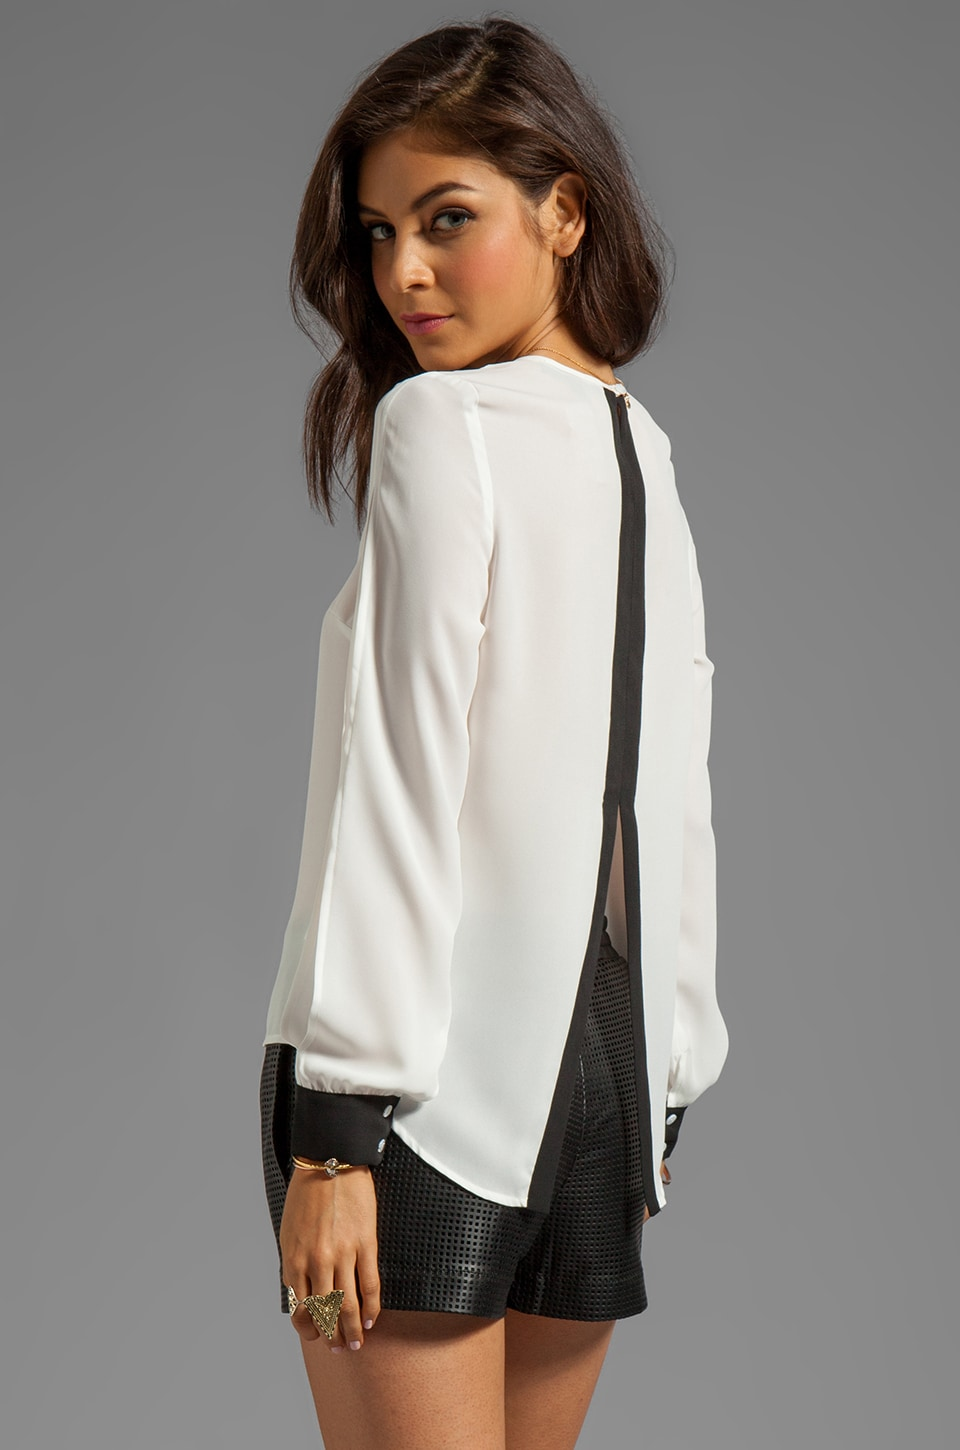 BLAQUE LABEL Slit Back Top in White/Black